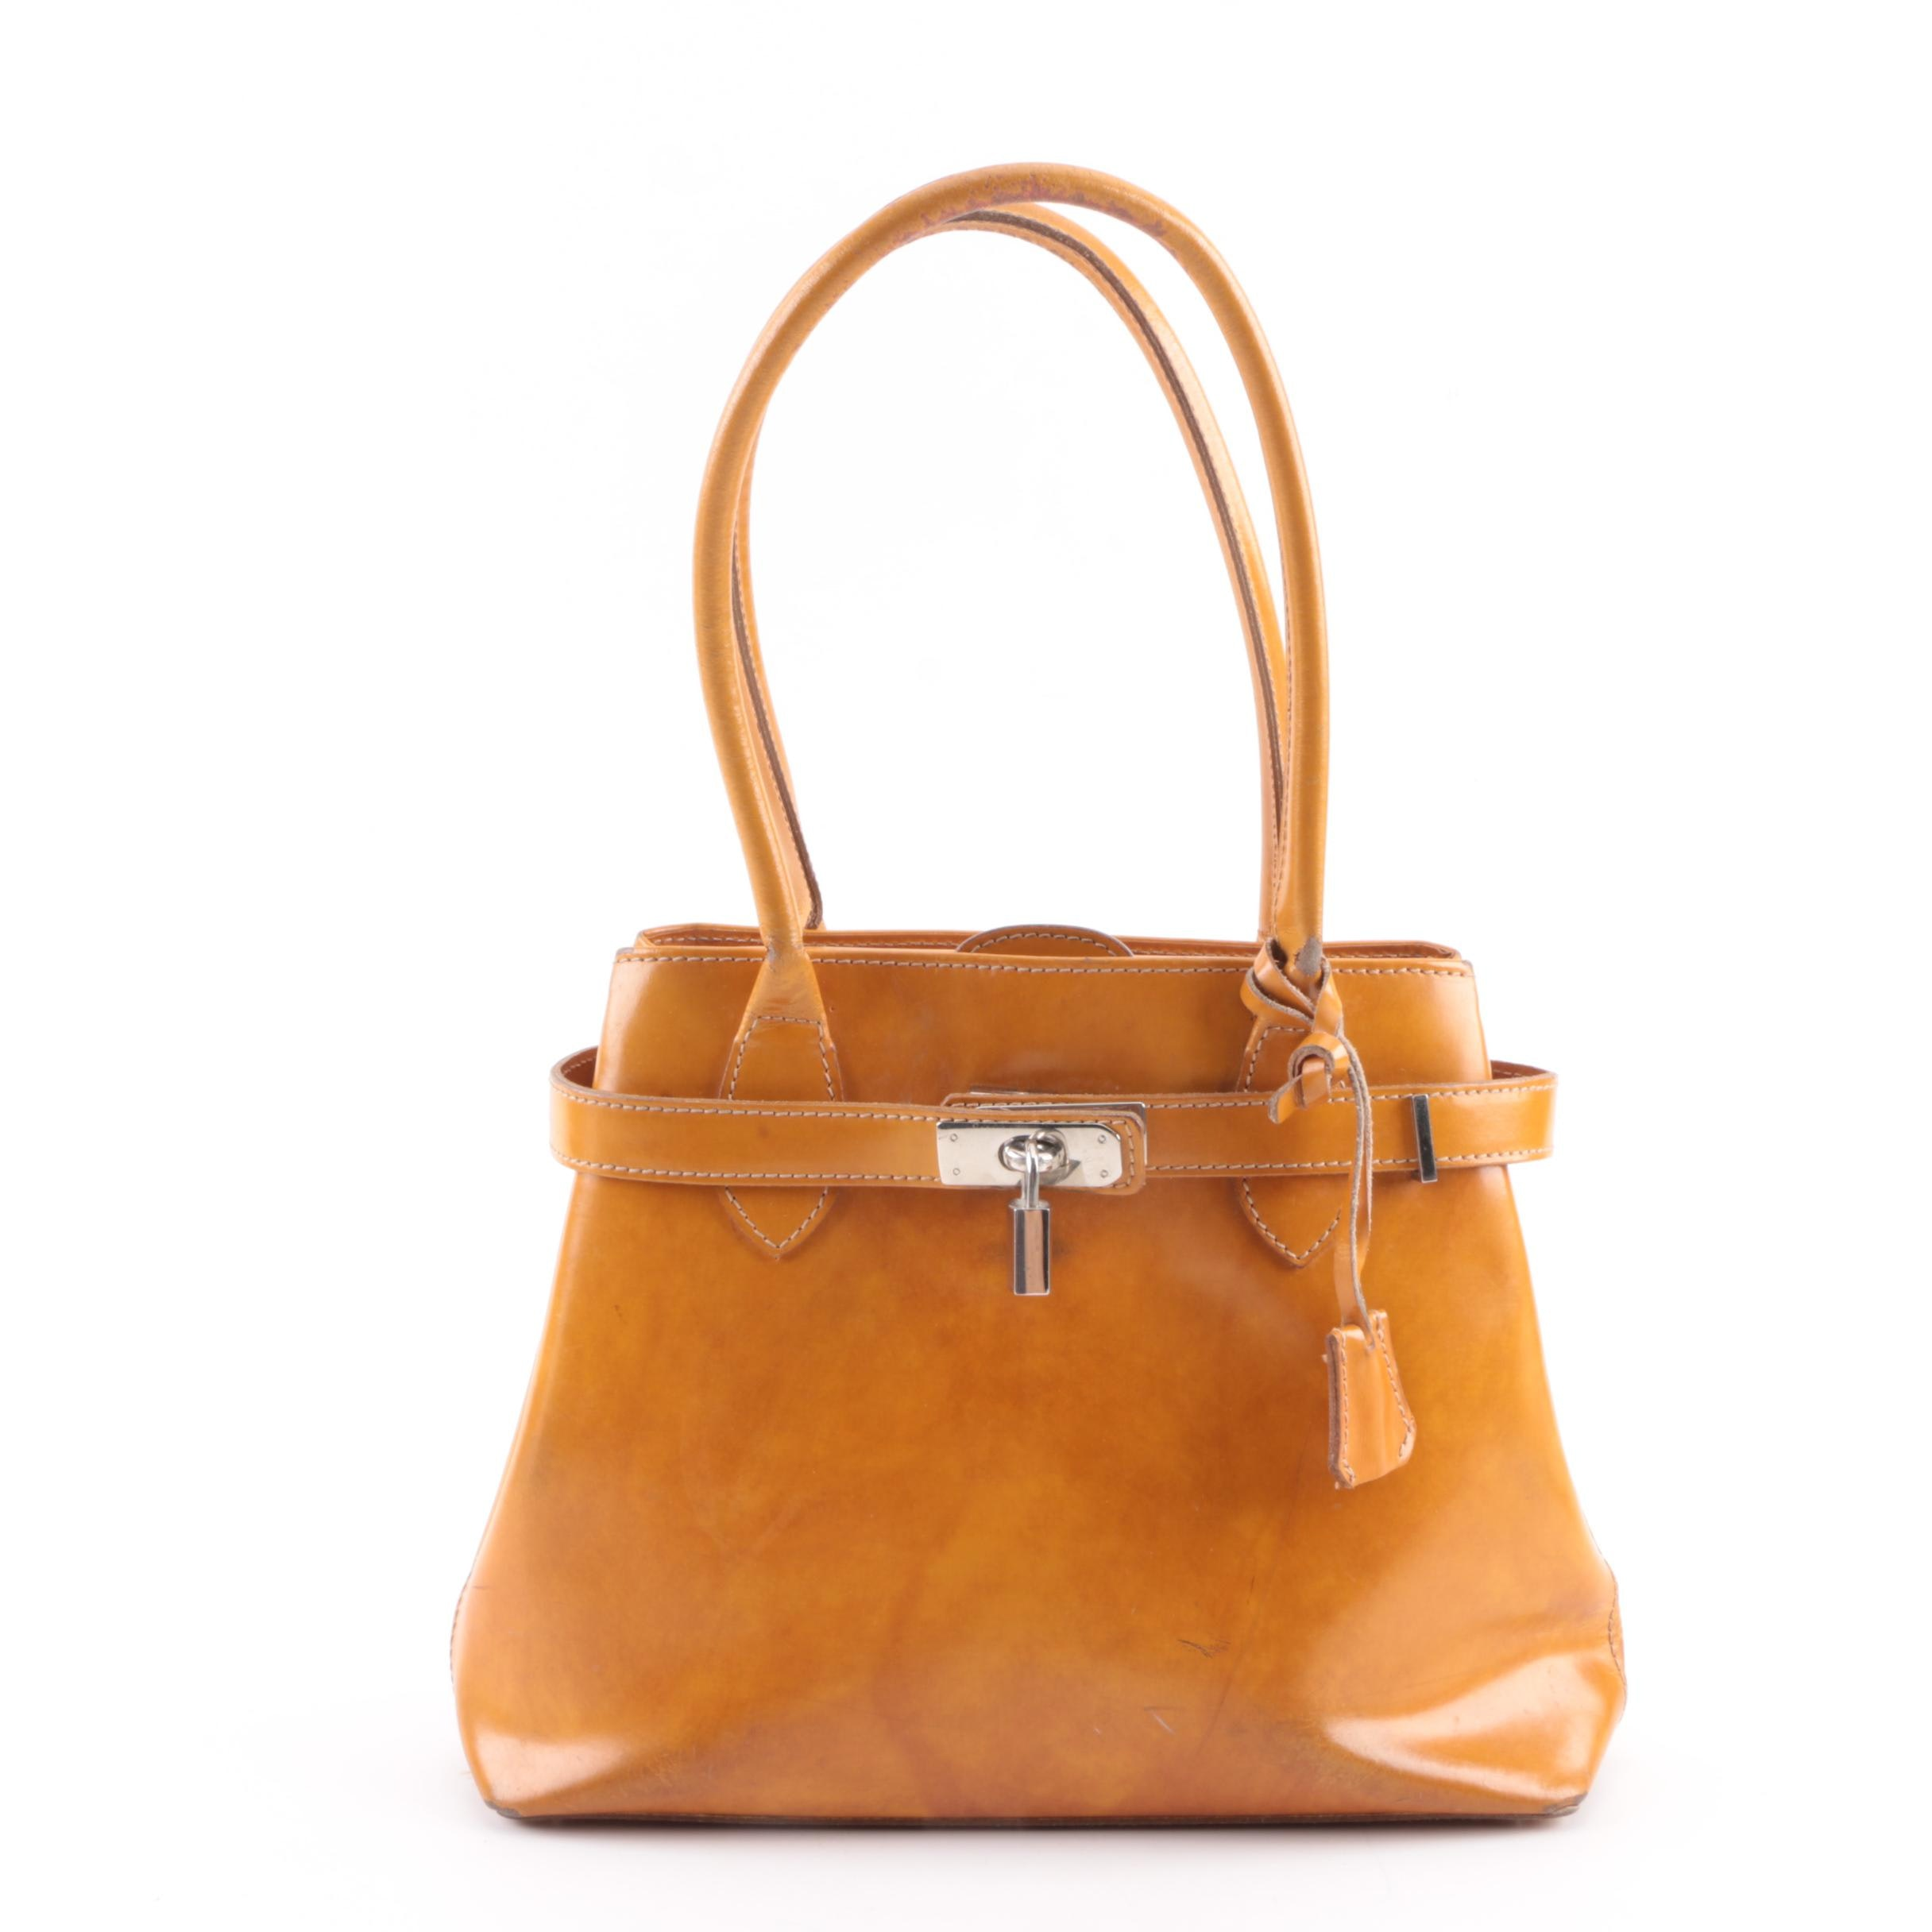 I Ponti Firenze Mustard Yellow Leather Handbag